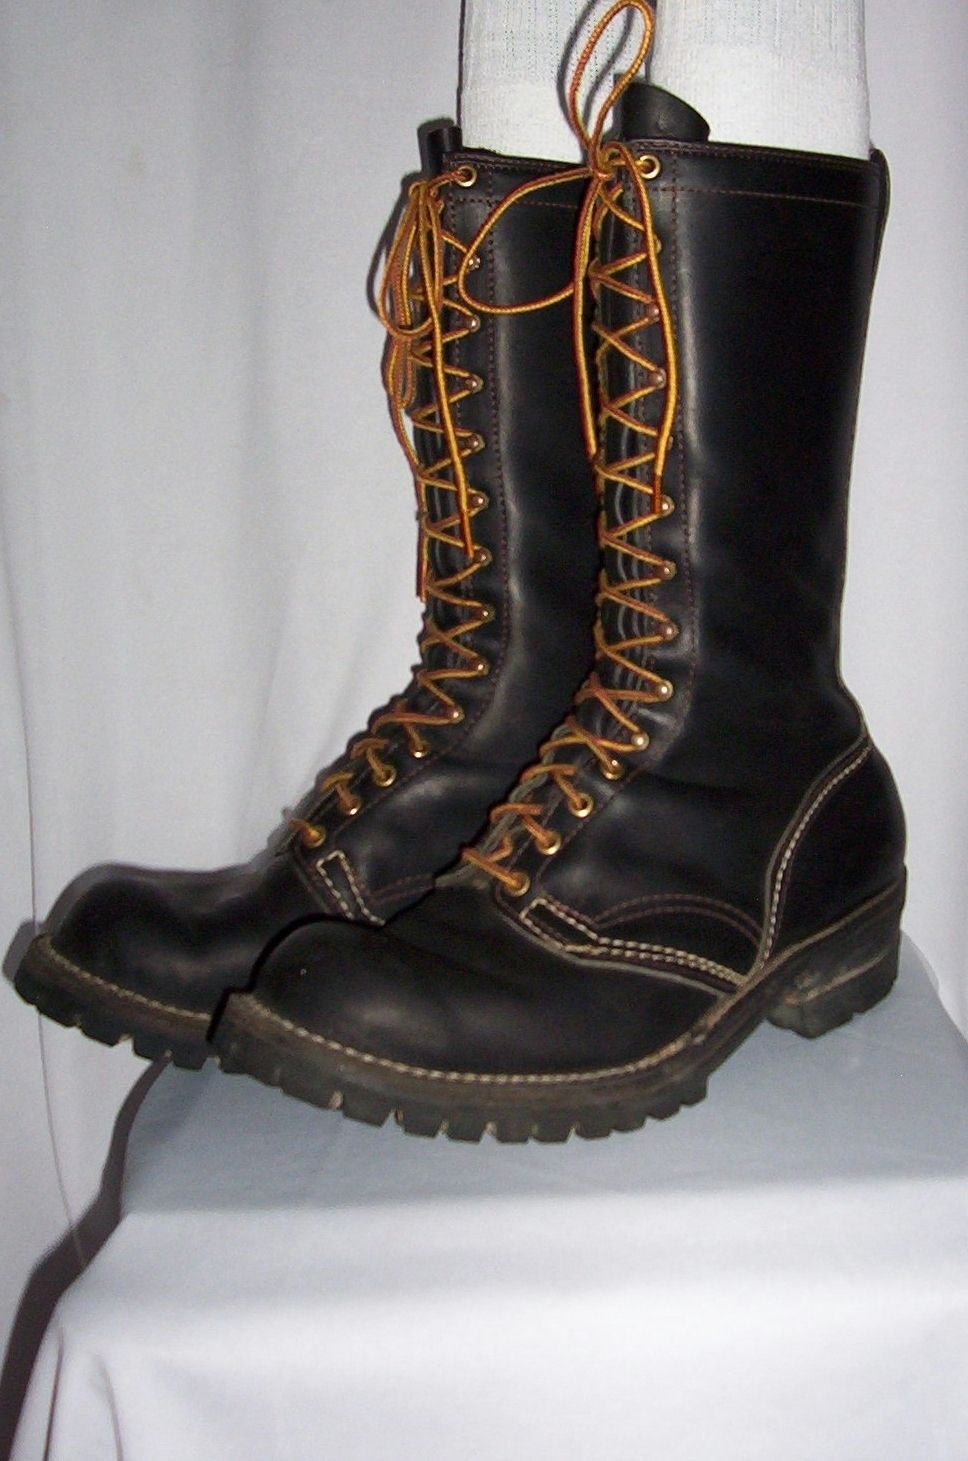 Wesco 13 Quot Jobmaster Logger Boots Misc Logger Boots